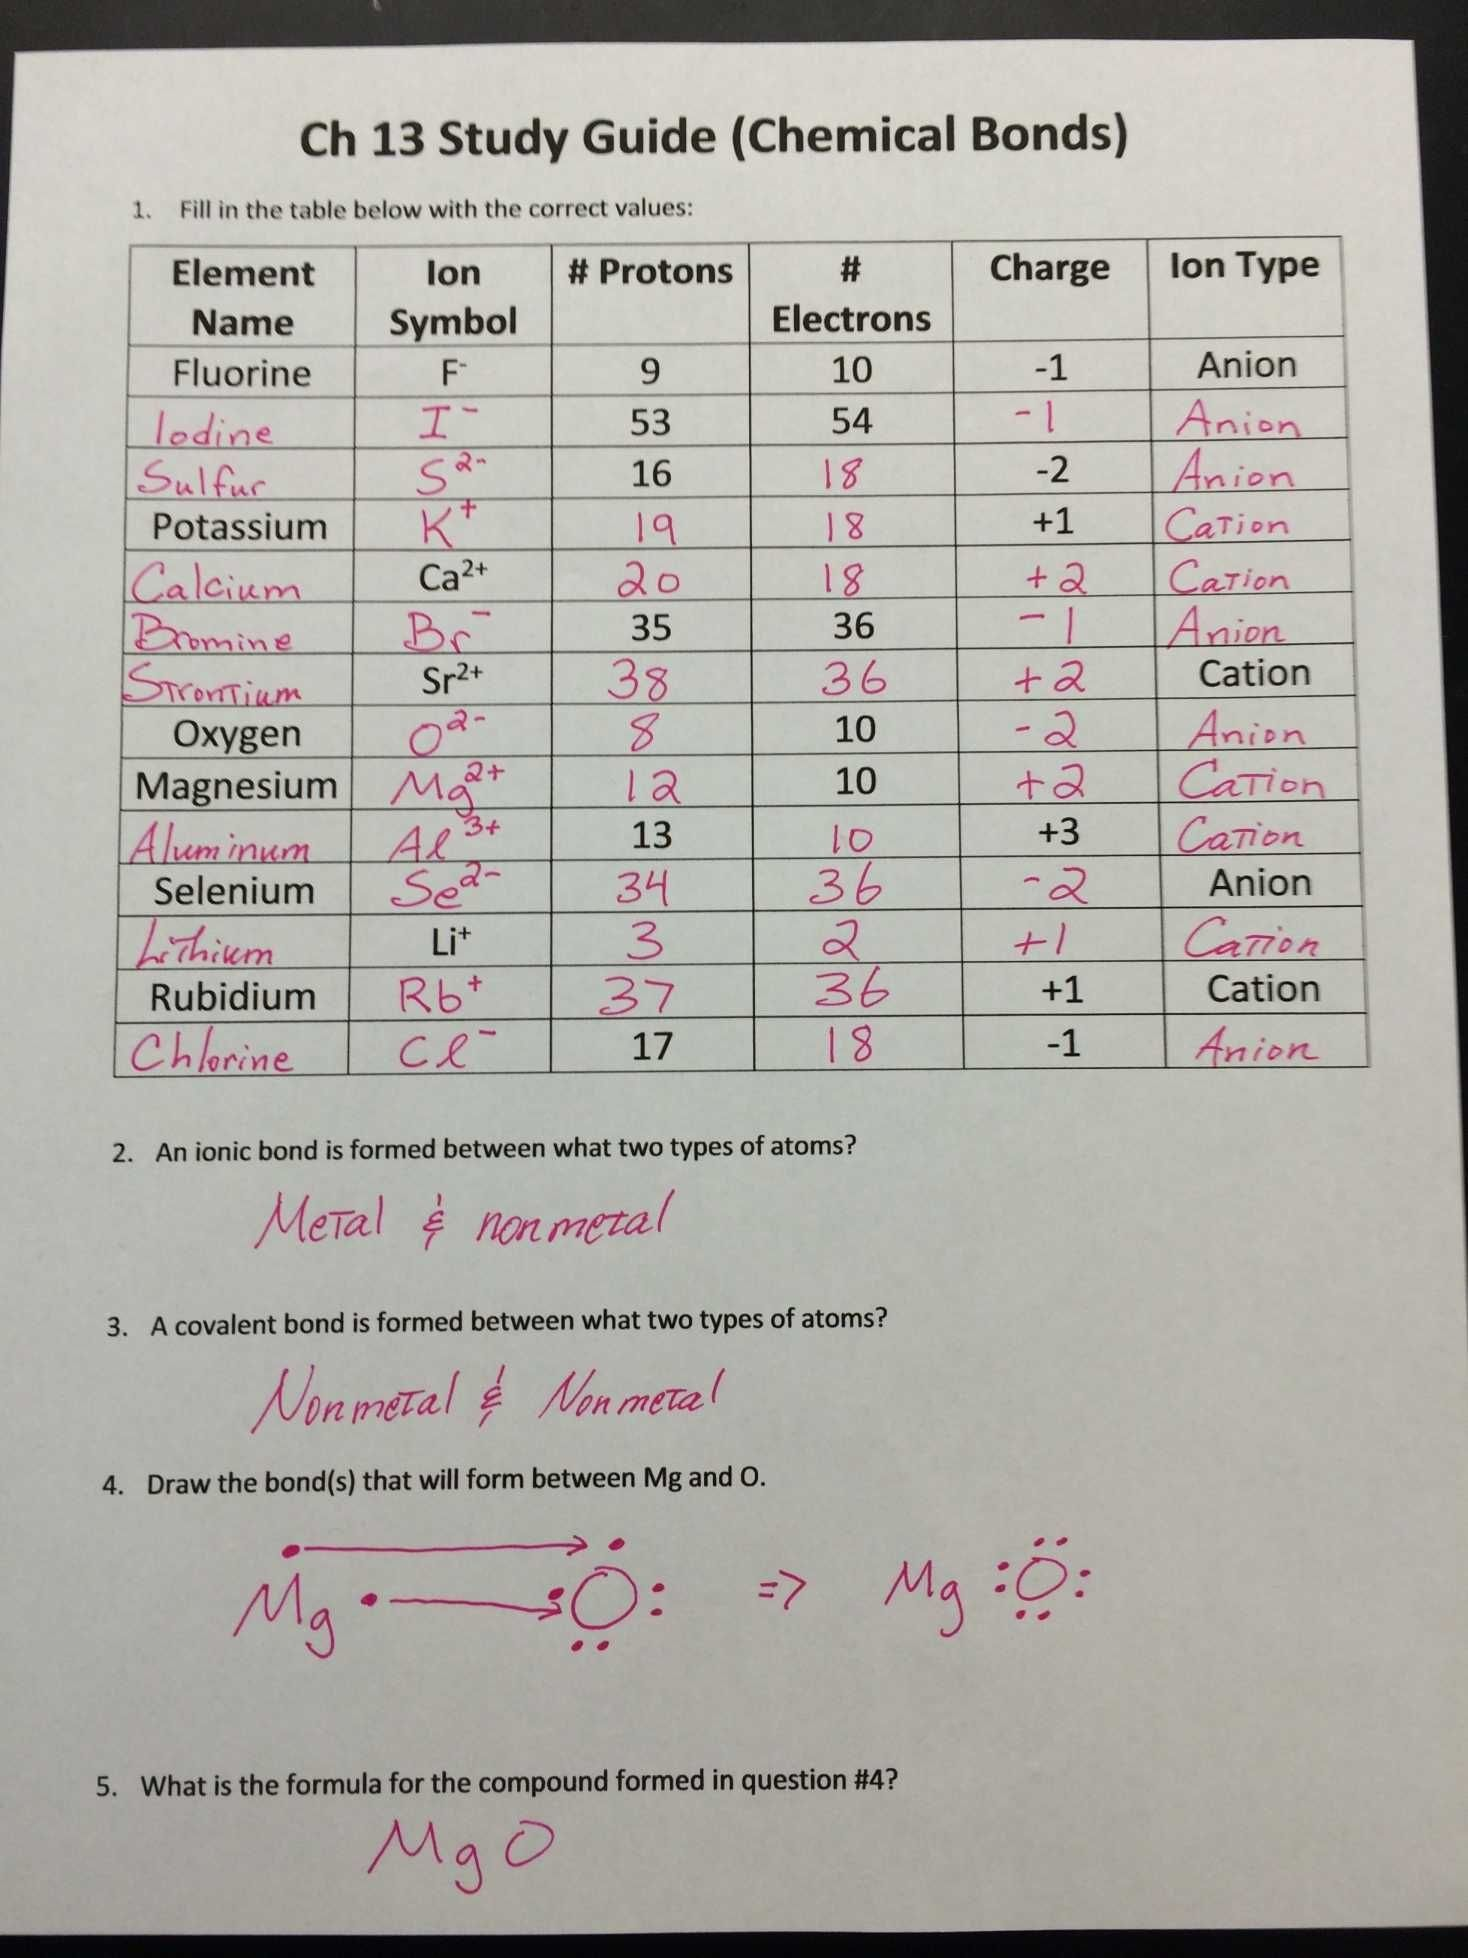 Valence Electrons And Ions Worksheet In 2020 Chemical Bond Covalent Bonding Worksheet Covalent Bonding